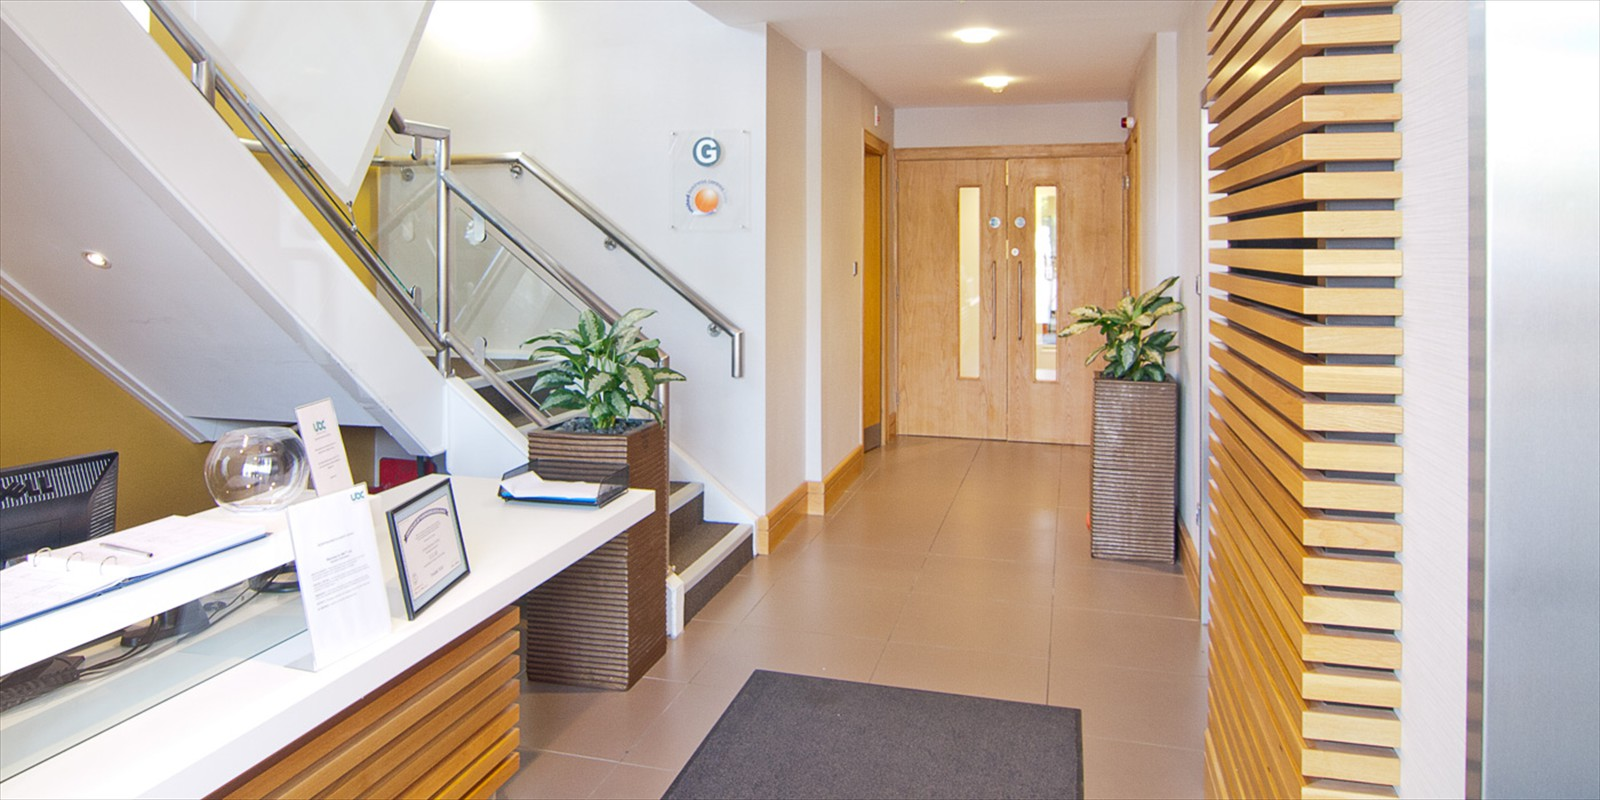 Enterprise House - Office Refurbishment - Southampton